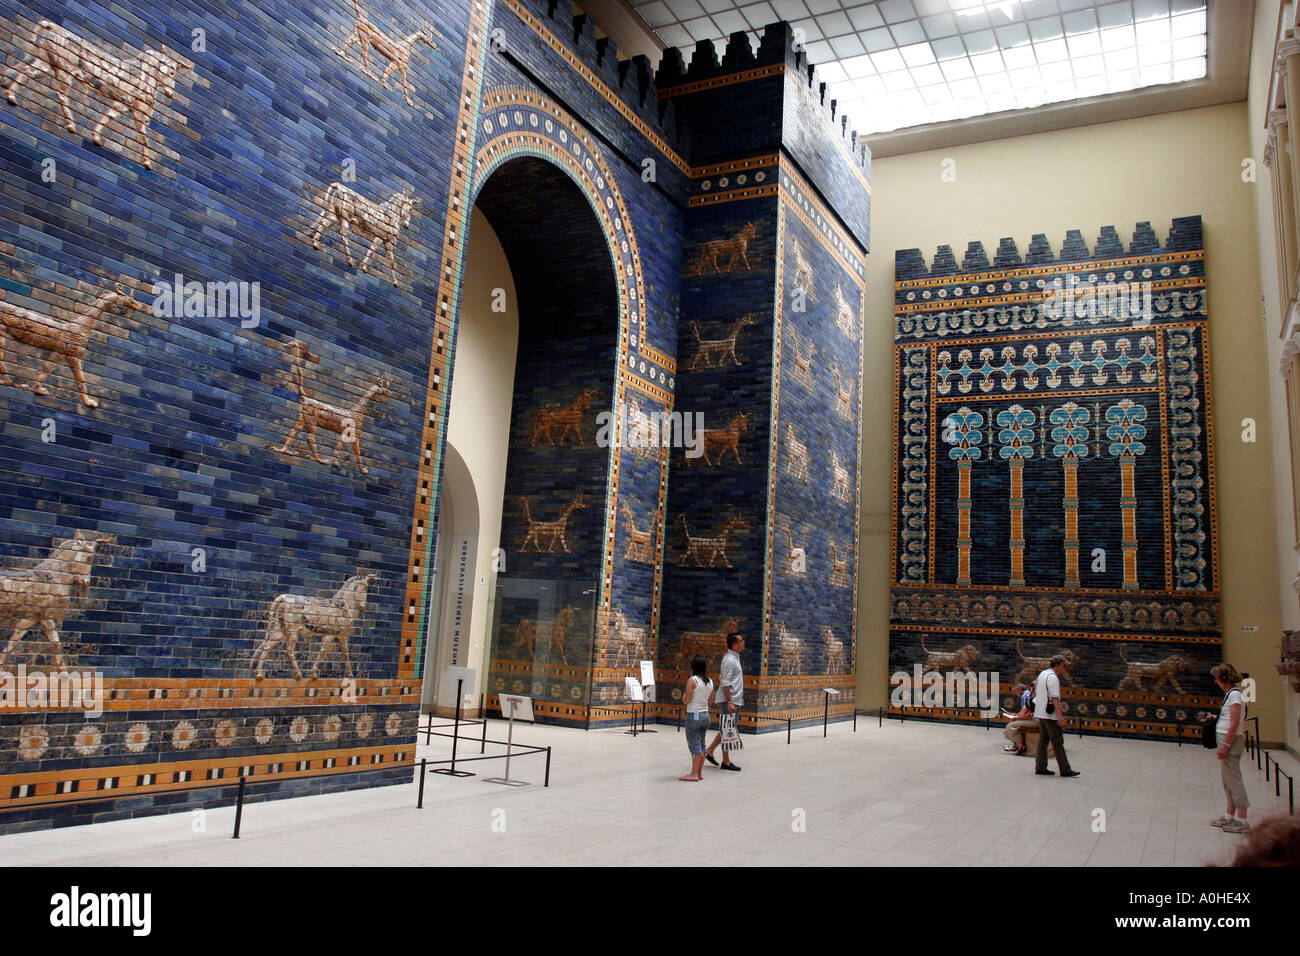 Germany Berlin Museumsinel Inside the Pergamon Museum The gates of Babylon Stock Photo